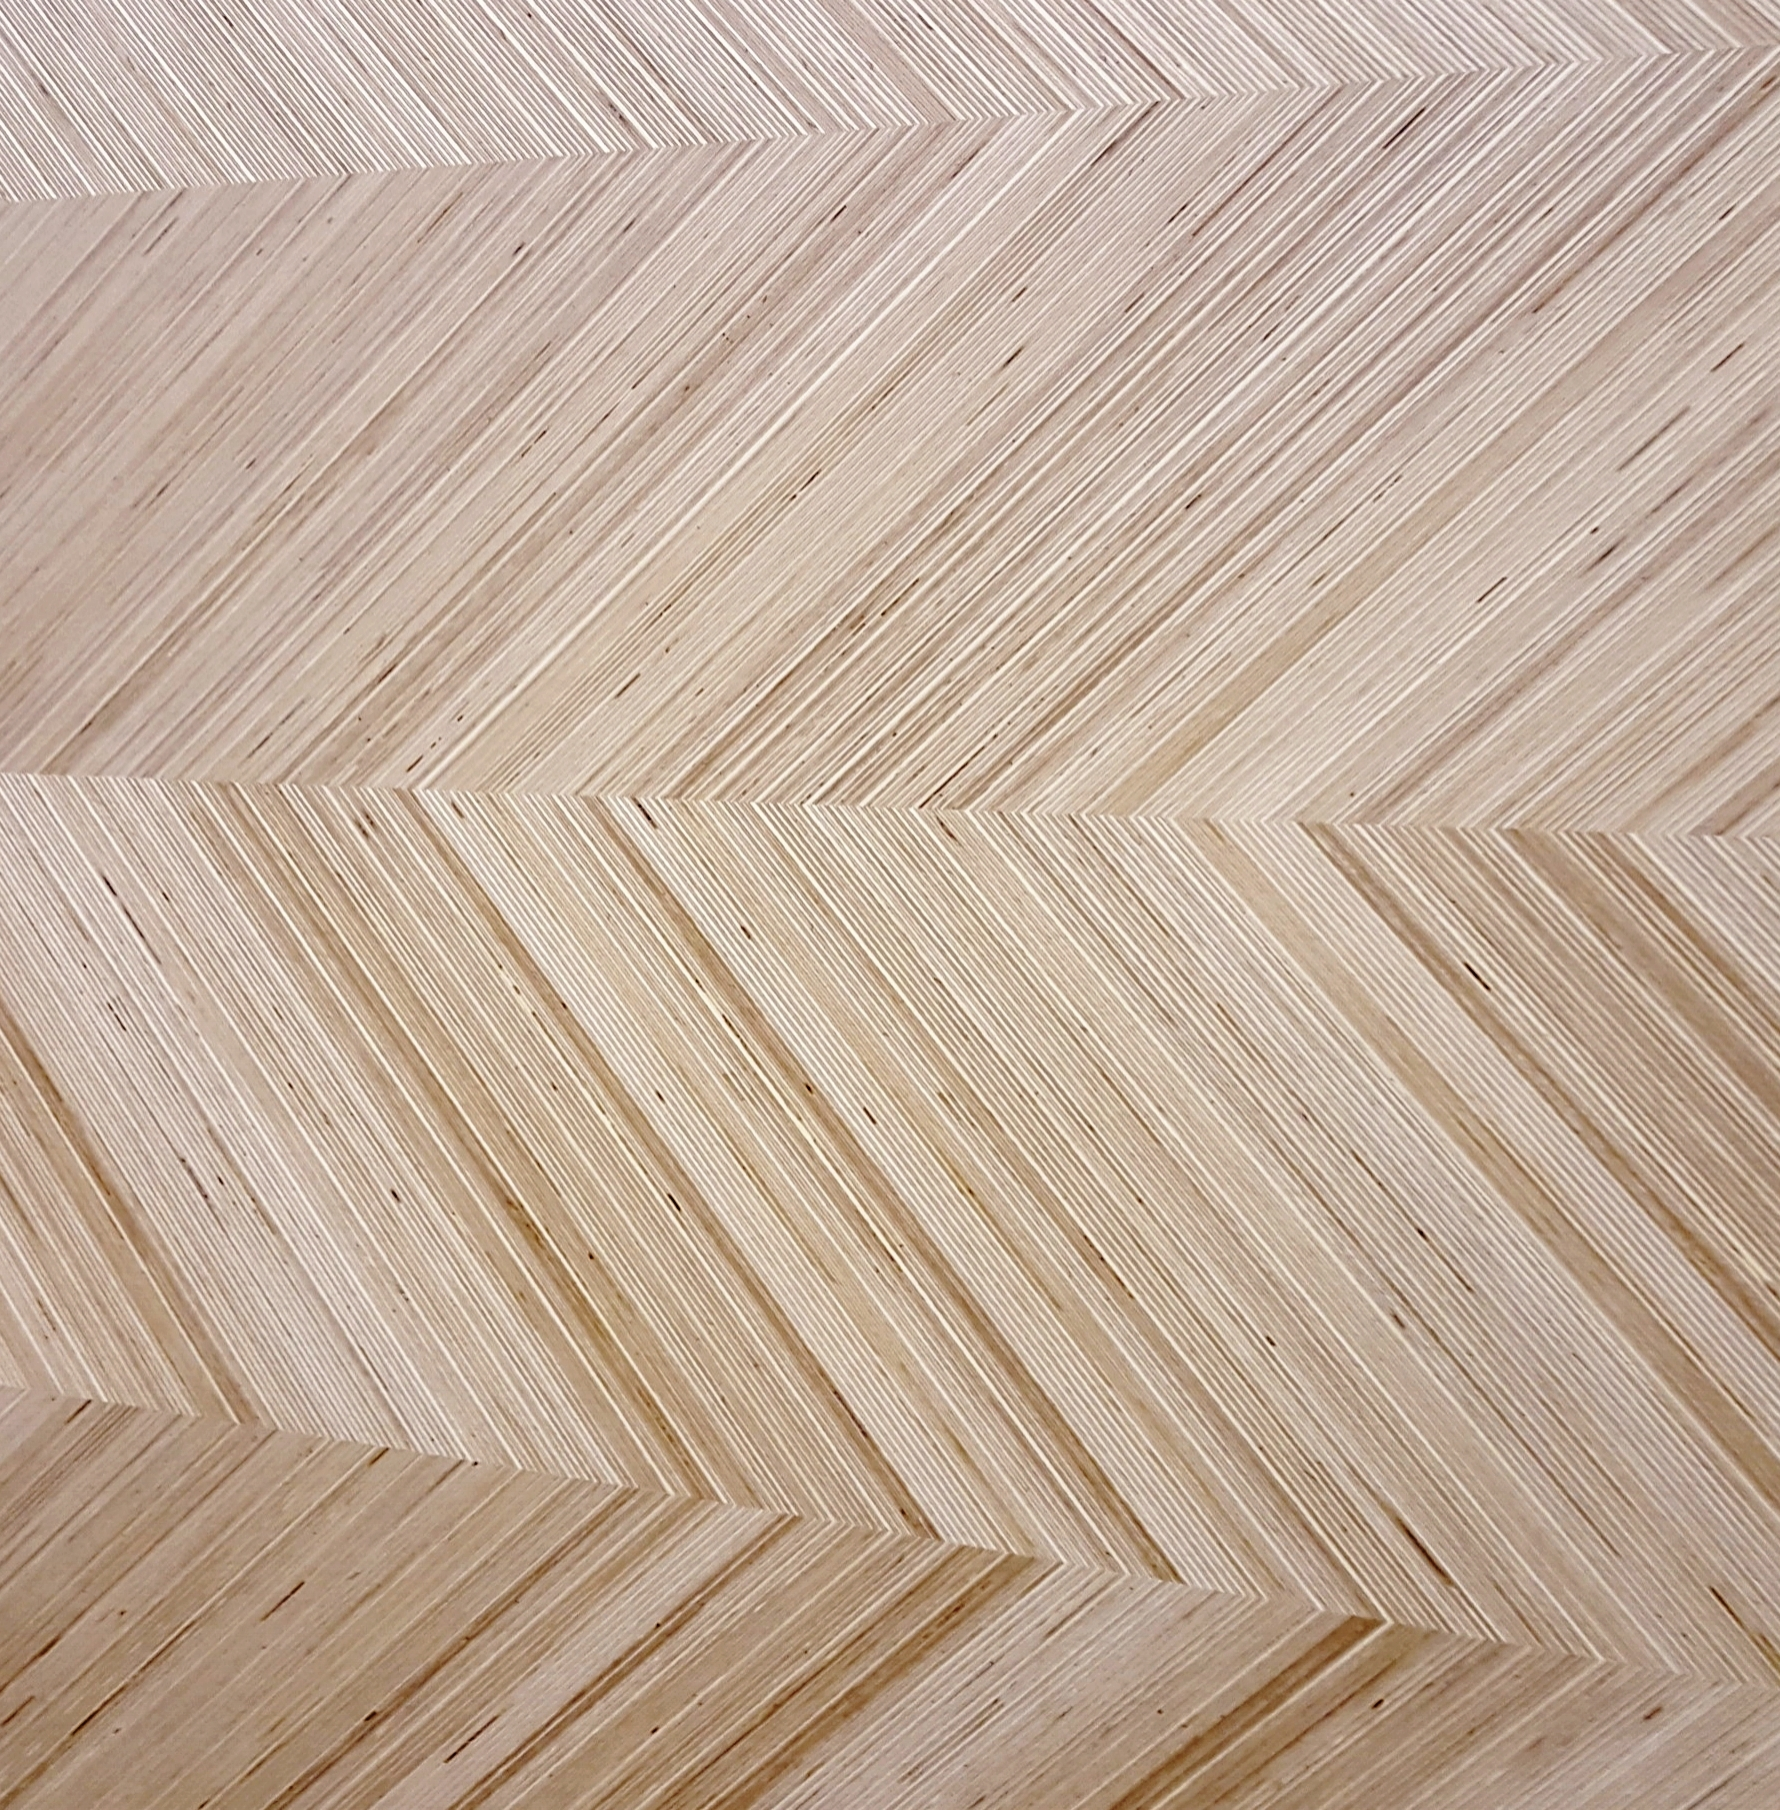 Think of the edge of a piece of plywood and you'll understand the beauty of this product. From Plexwood